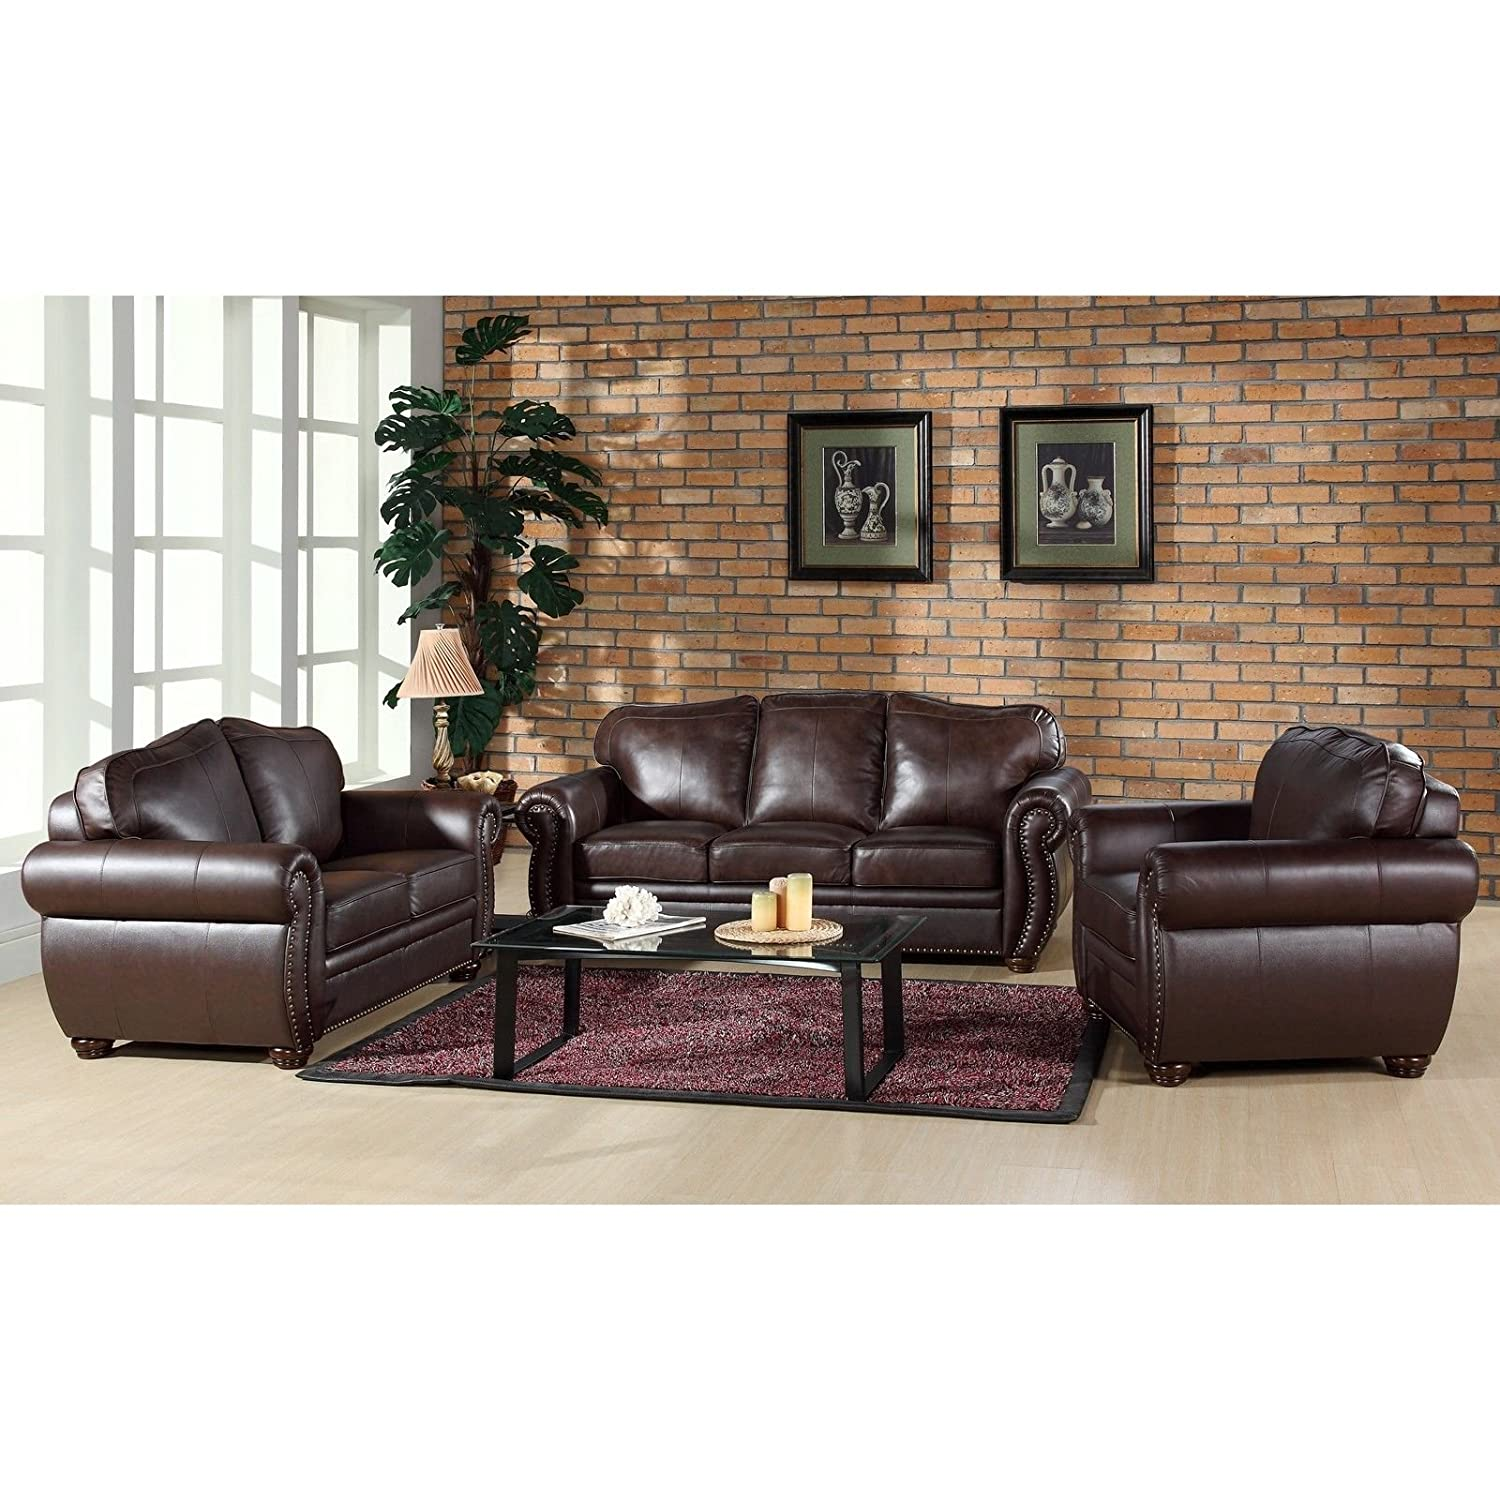 Amazon.com: Metro Shop Abbyson Living Richfield Premium Top Grain Leather  Sofa, Loveseat, And Armchair: Kitchen U0026 Dining